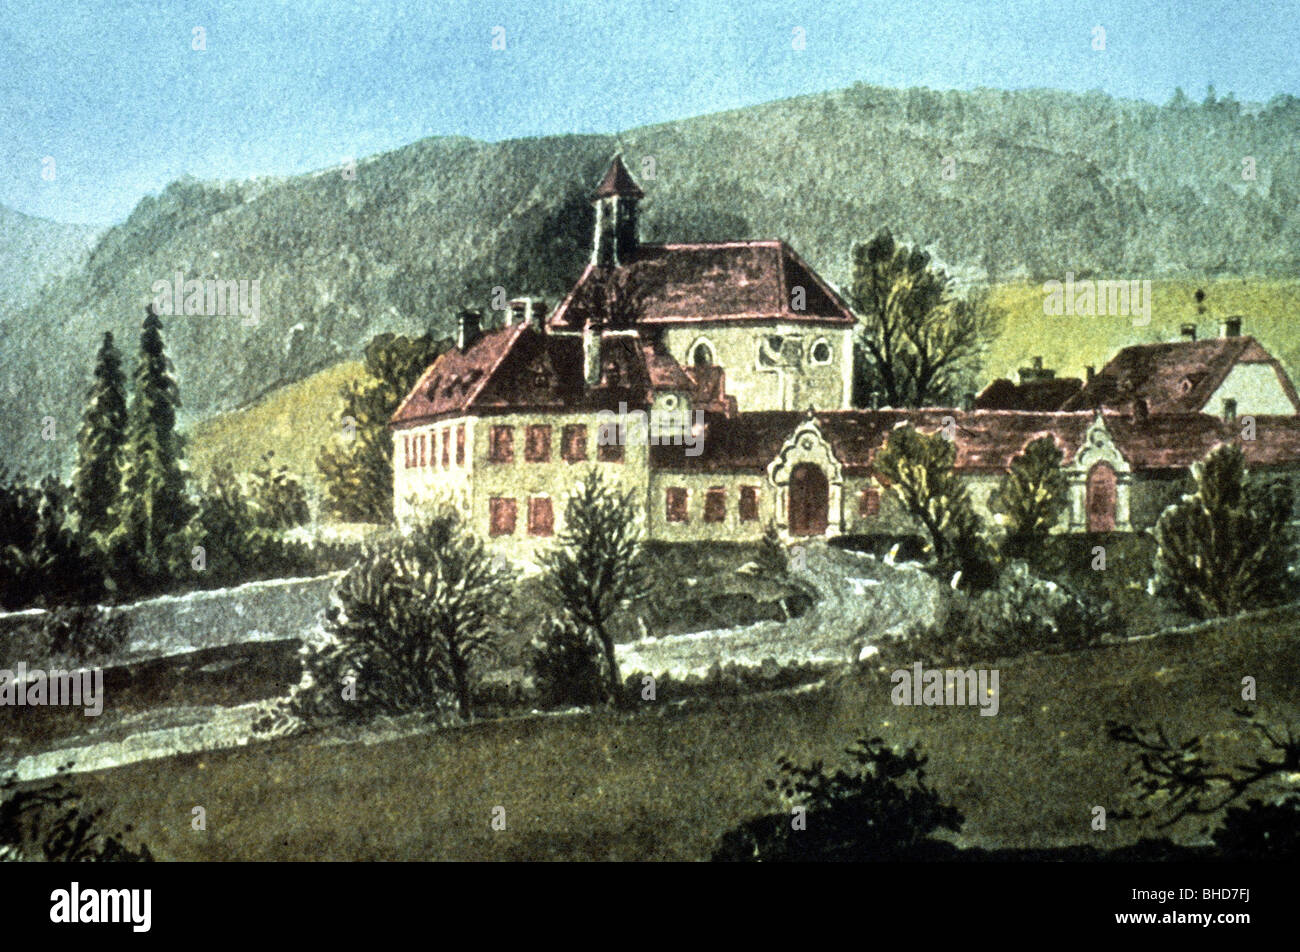 geography / travel, Austria, castles, hunting lodge Mayerling, Lower Austria, painting, circa 1890, 19th century, - Stock Image